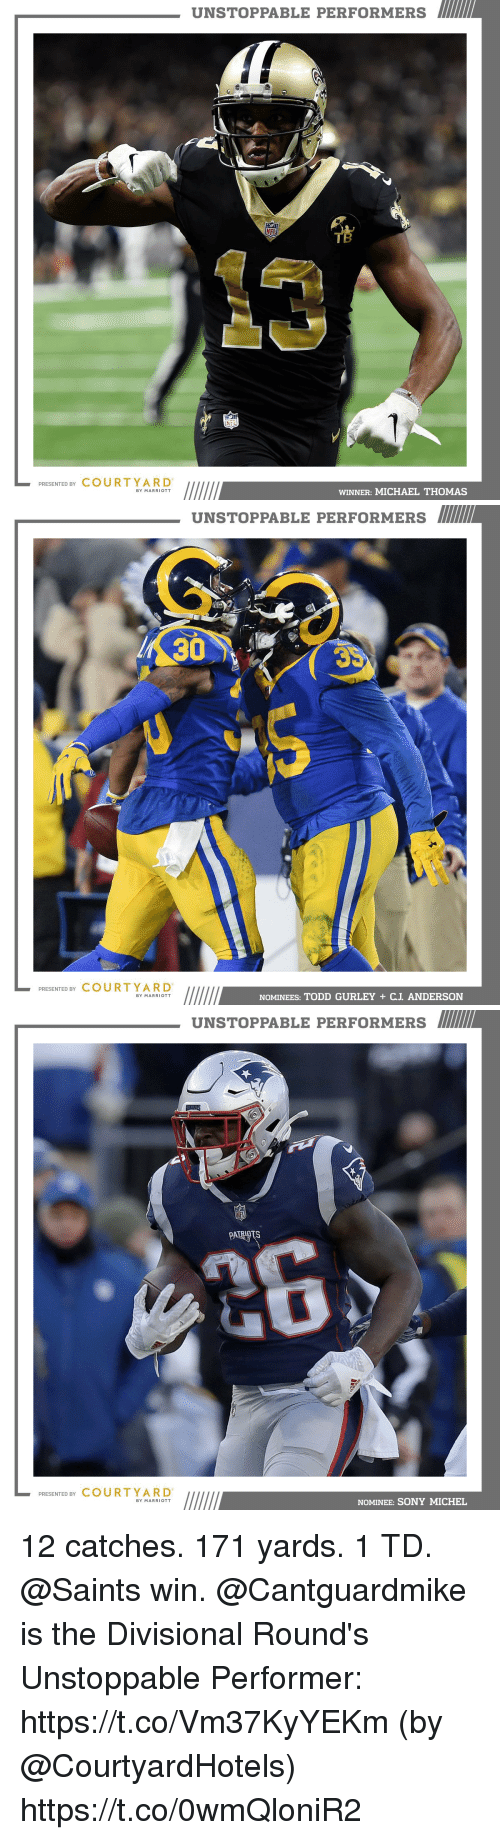 Memes, Patriotic, and New Orleans Saints: UNSTOPPABLE PERFORMERS  13  PRESENTED BY COURTYARD  WINNER: MICHAEL THOMAS  BY MARRIOTT   UNSTOPPABLE PERFORMERS  30  PRESENTED BY COURTYARD  NOMINEES: TODD GURLEY + CJ. ANDERSON  BY MARRIOTT   UNSTOPPABLE PERFORMERS  PATRIOTS  PRESENTED BY COURTYARD  NOMINEE: SONY MICHEL  BY MARRIOTT 12 catches. 171 yards. 1 TD. @Saints win.  @Cantguardmike is the Divisional Round's Unstoppable Performer: https://t.co/Vm37KyYEKm (by @CourtyardHotels) https://t.co/0wmQloniR2